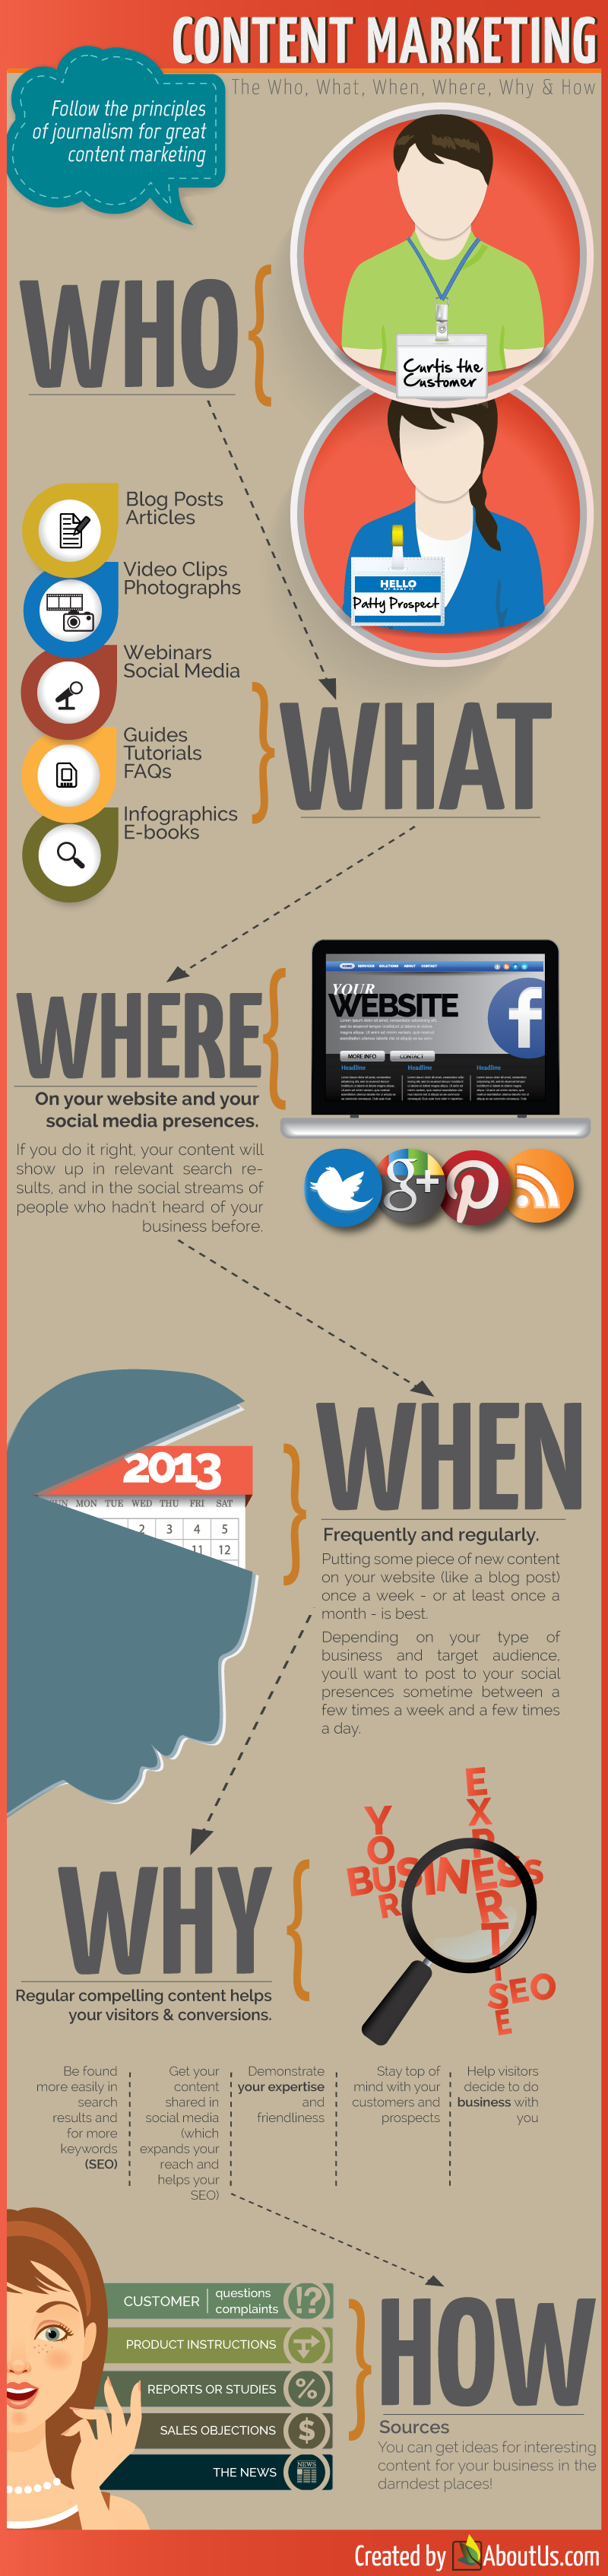 AboutUs Content Marketing Infographic